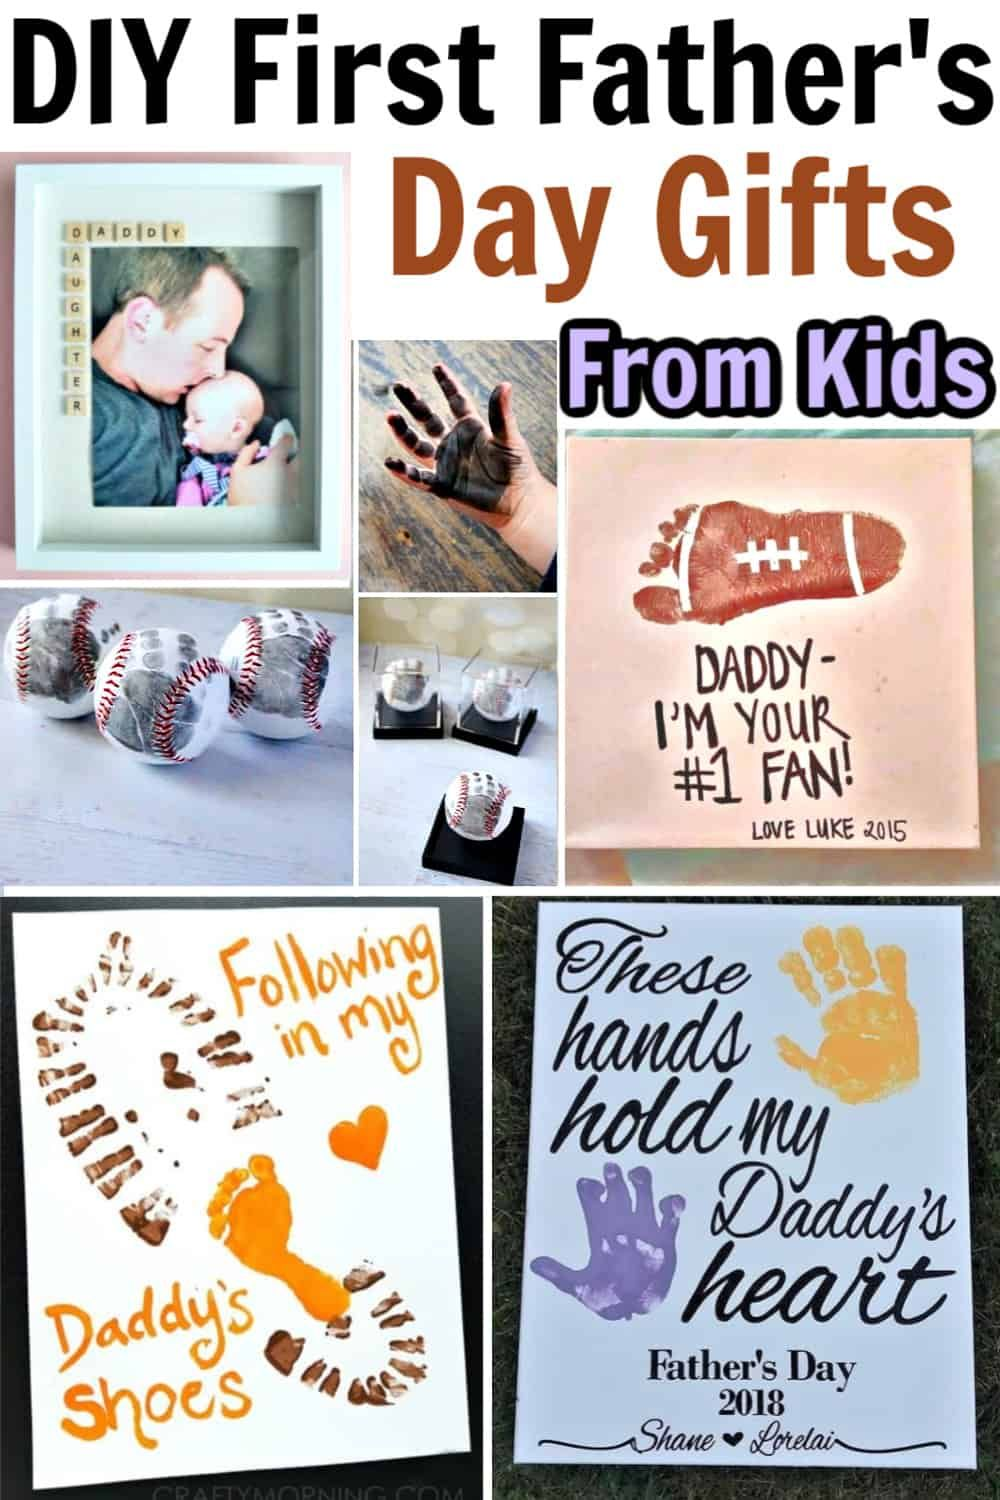 Diy gifts for dad and grandpa that are easy to make